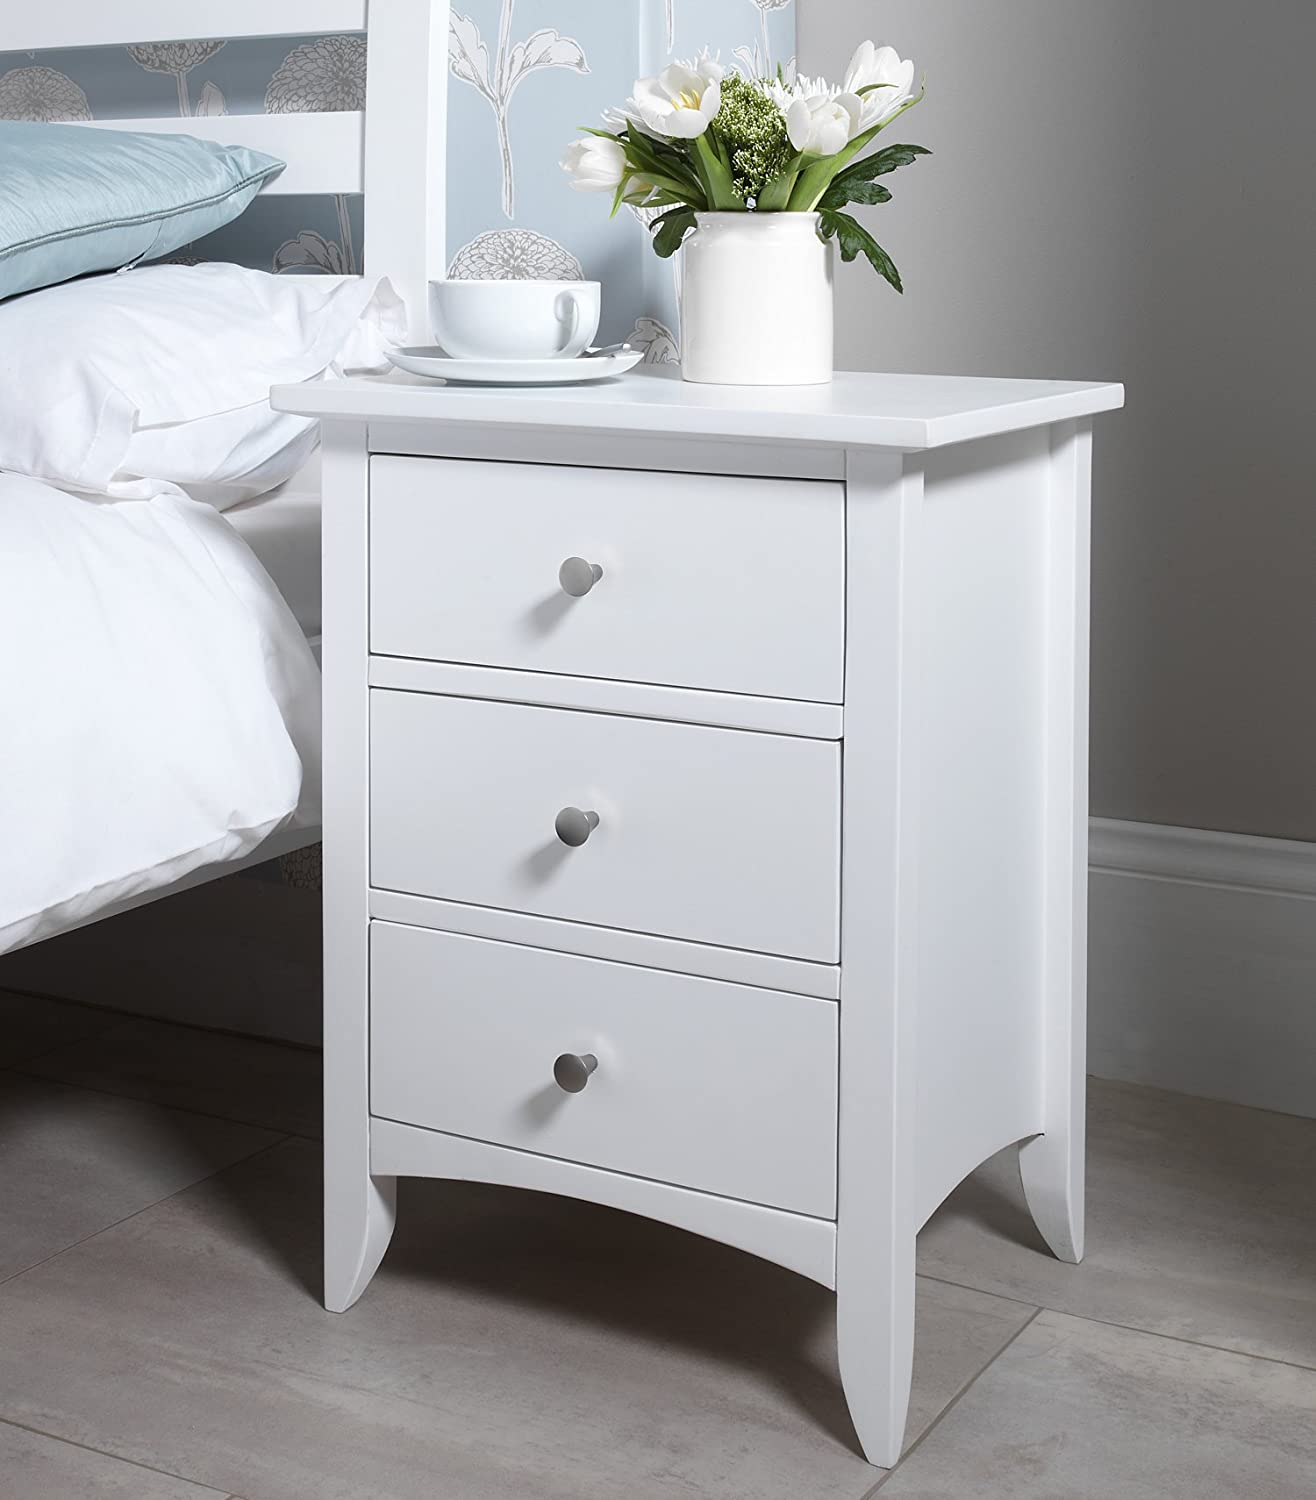 Edward Hopper White Bedside Table With  Drawers Metal Runners Dovetail Joints Fully Assembled Amazon Co Uk Kitchen Home